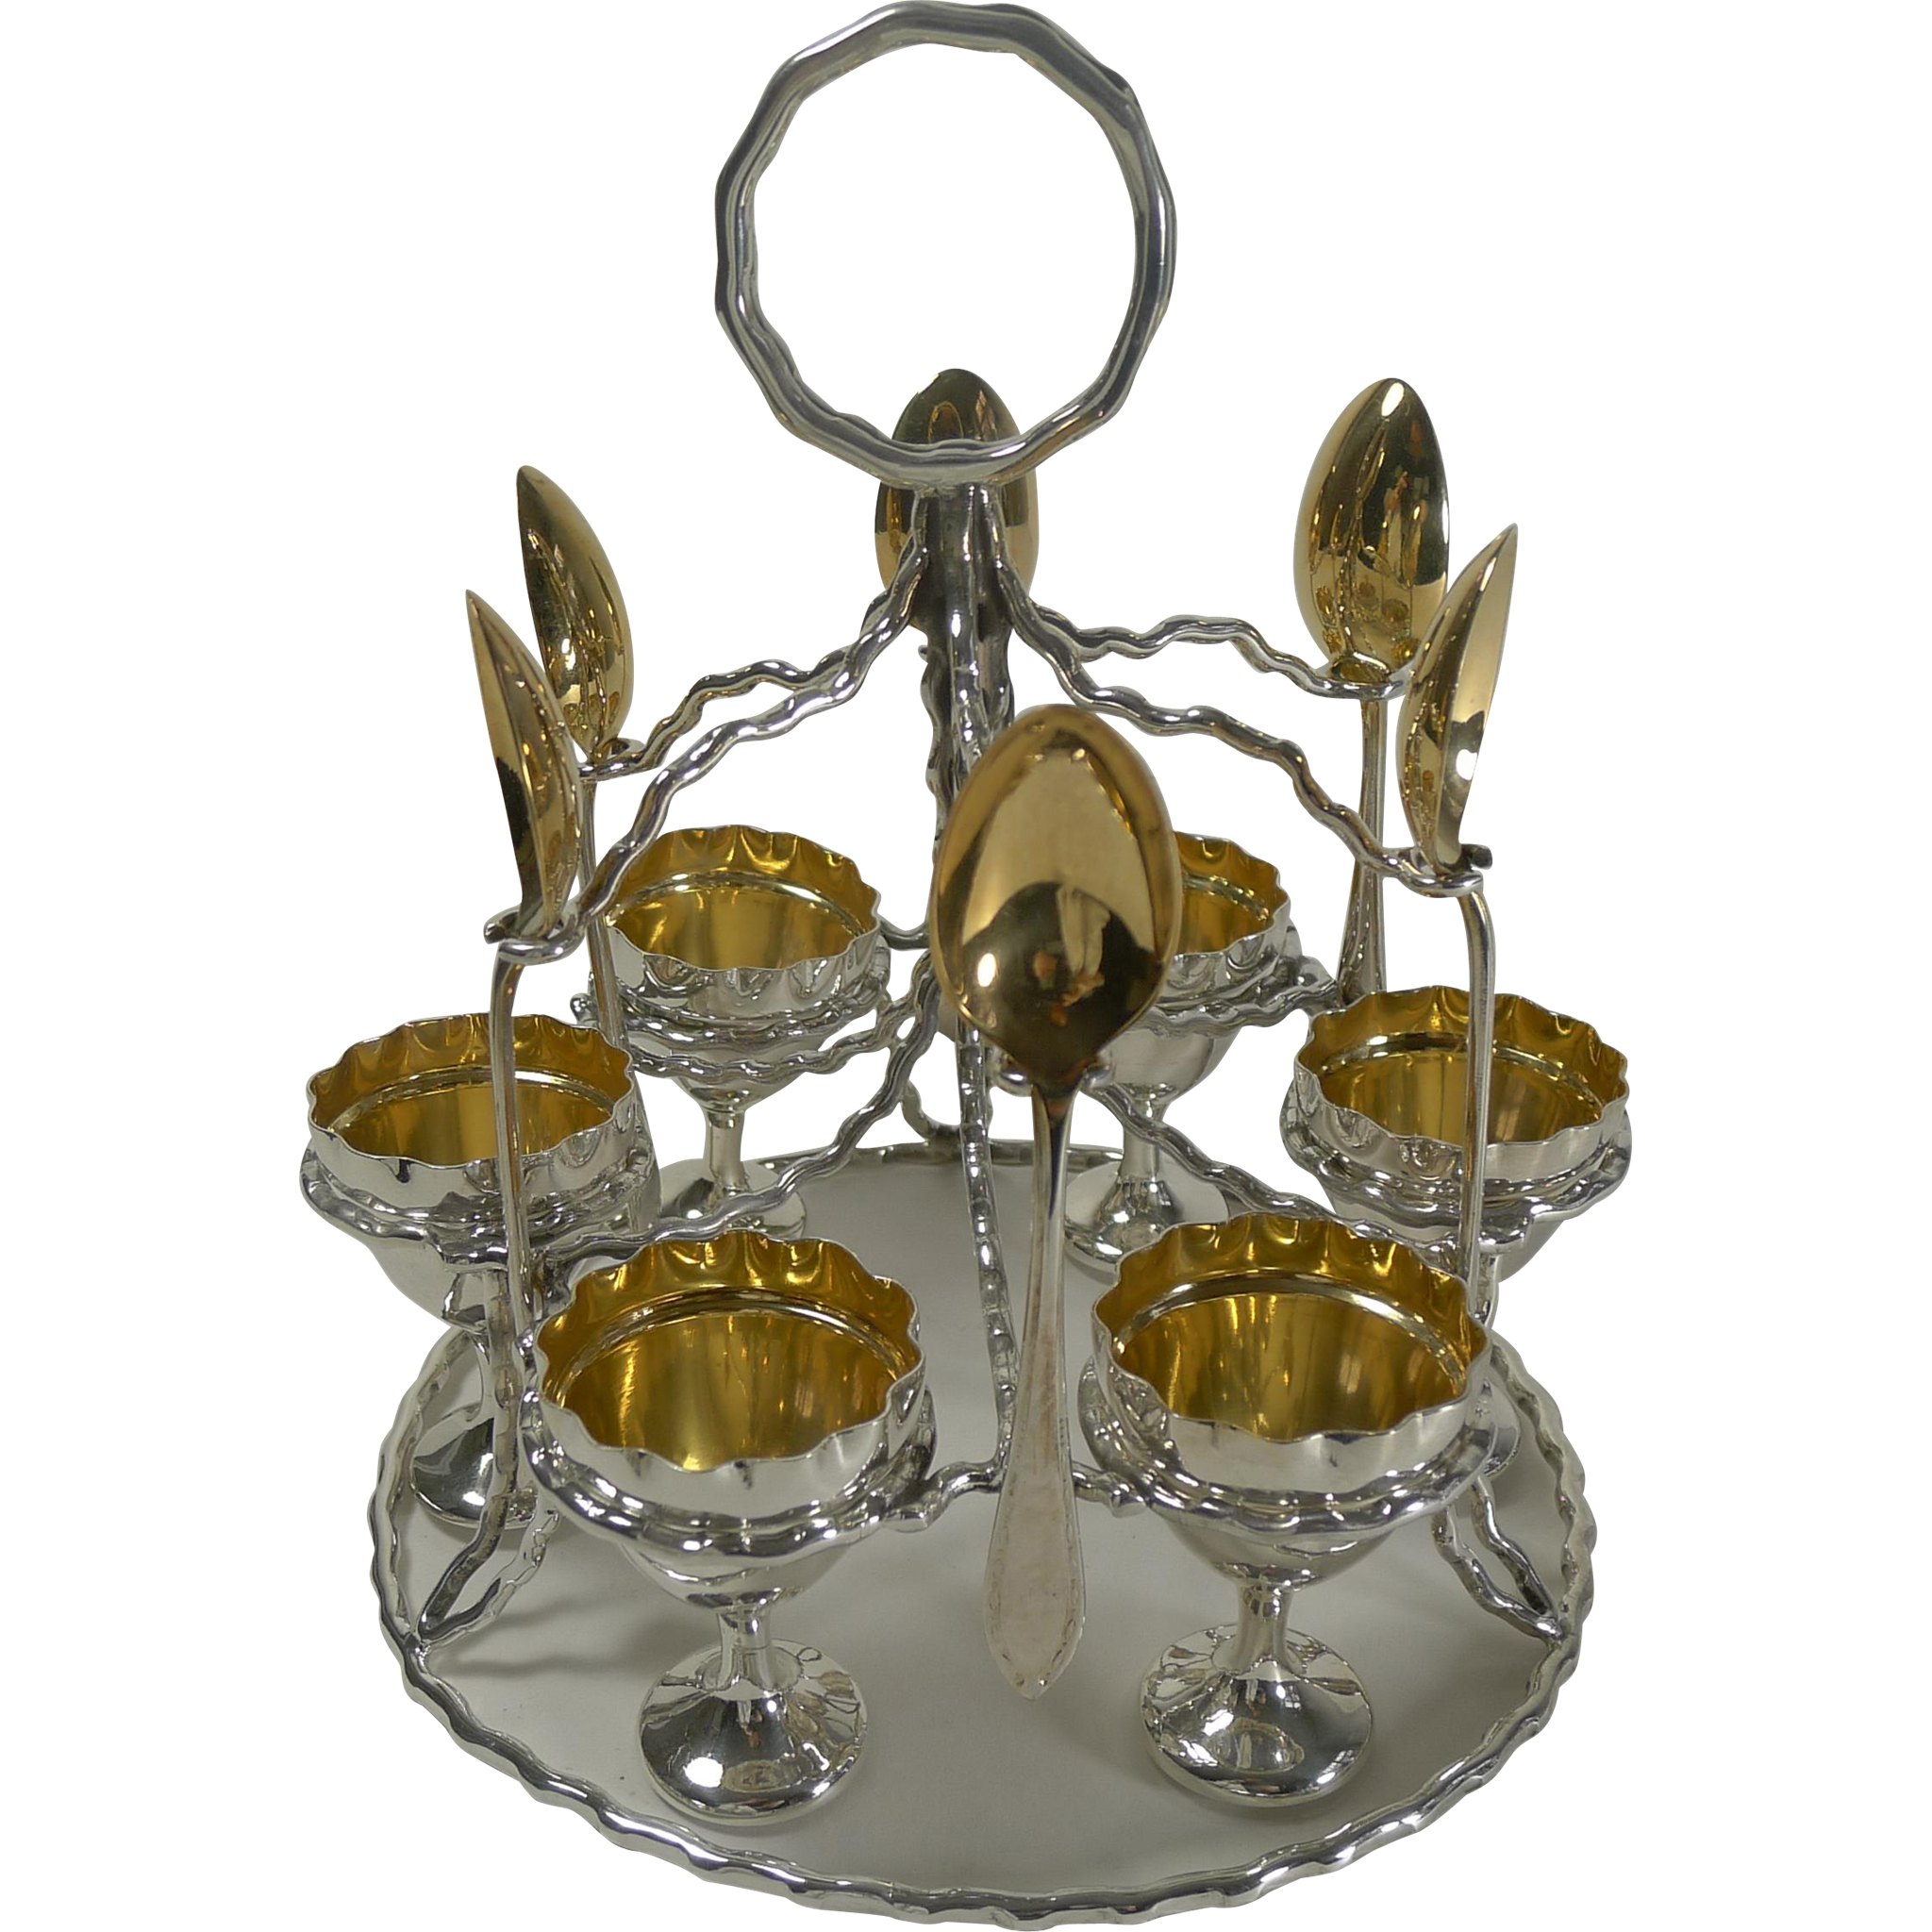 Unusual Antique English Silver Plated Egg Cruet For Six c.1900